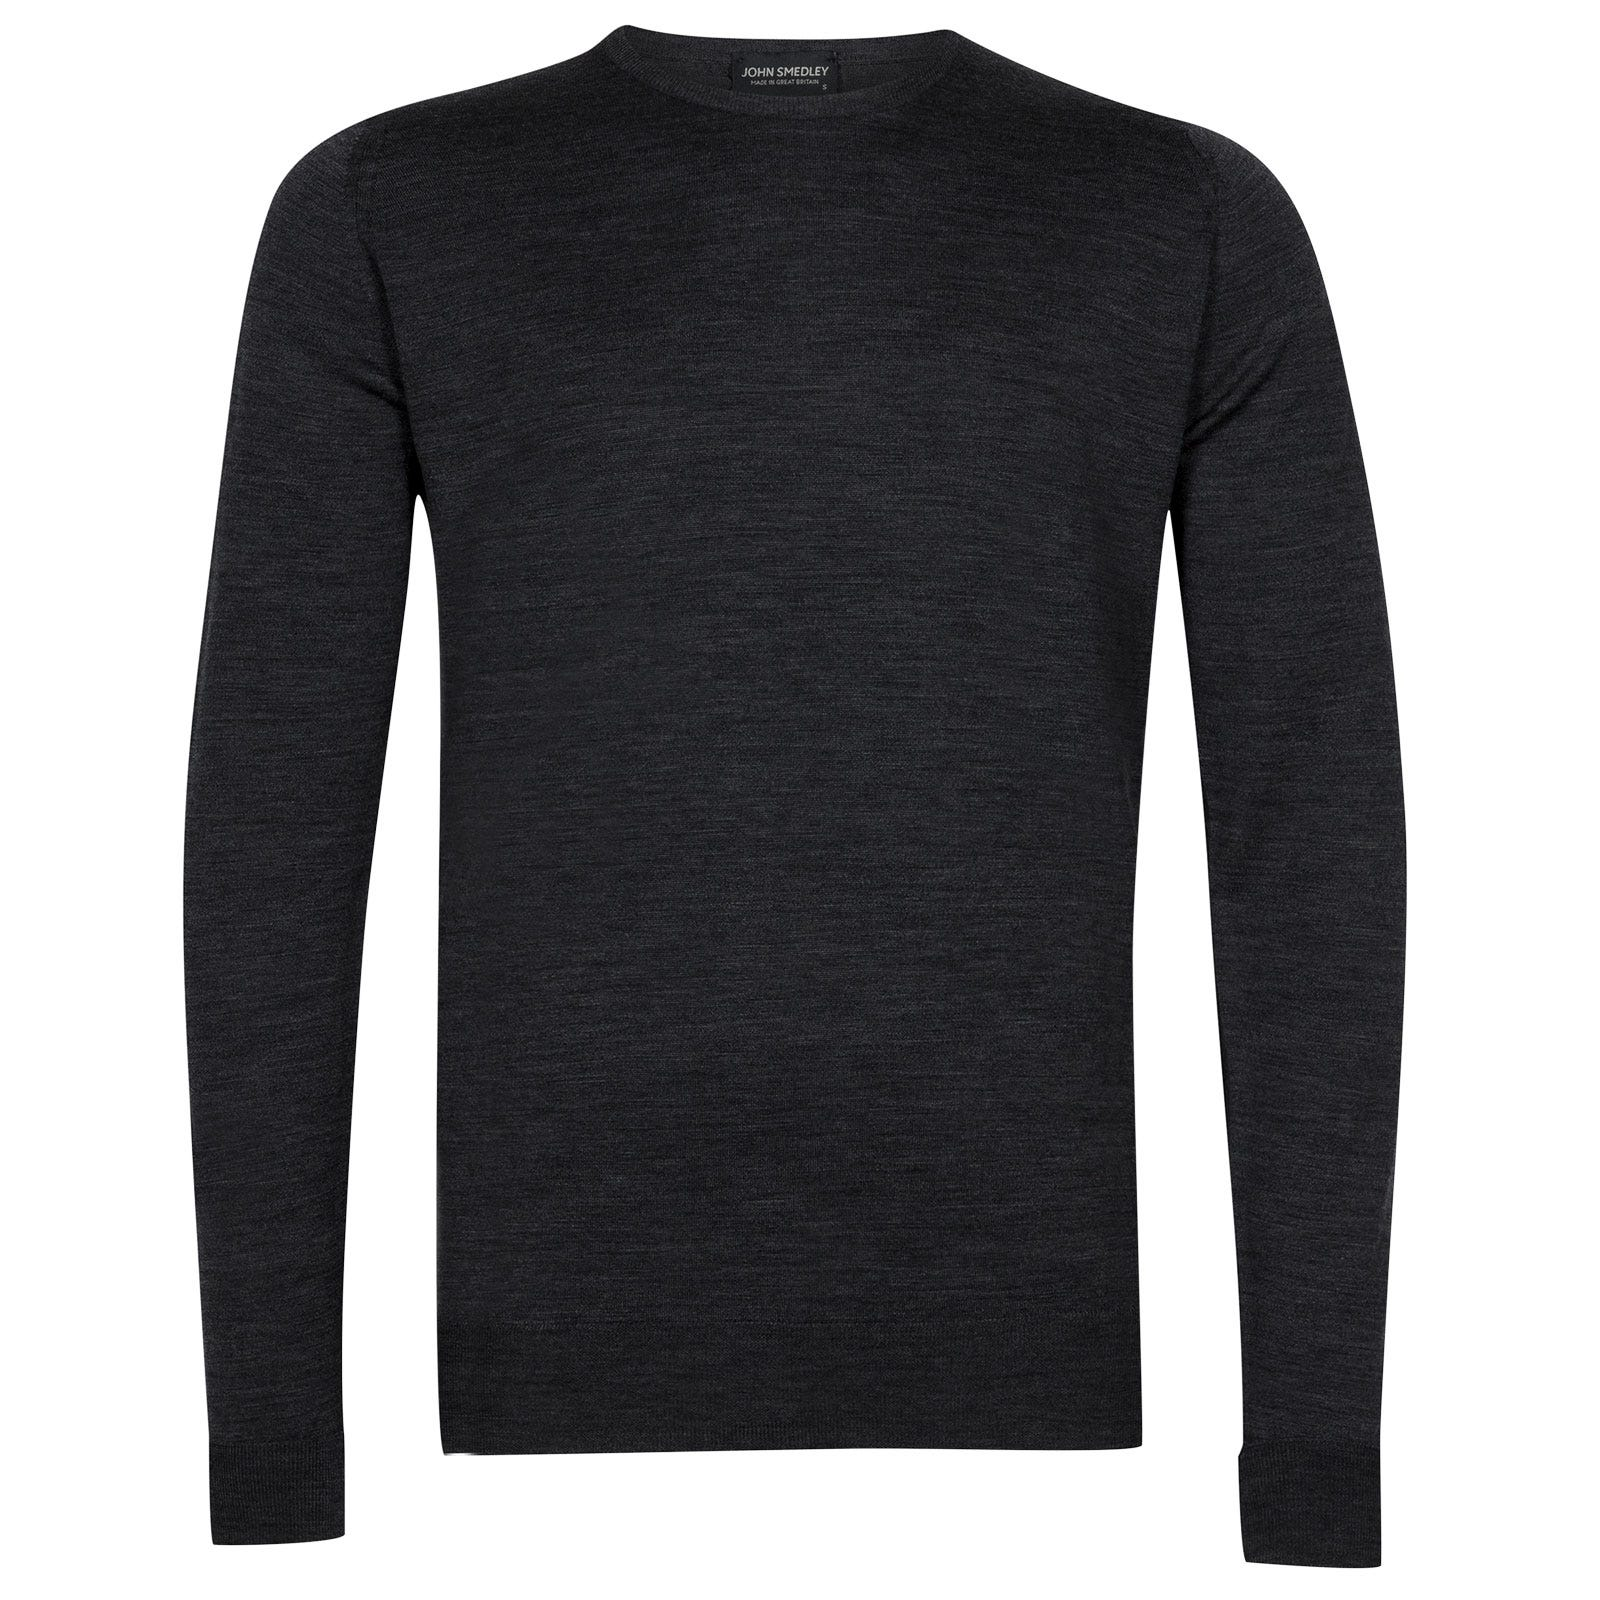 John Smedley marcus Merino Wool Pullover in Charcoal-XL